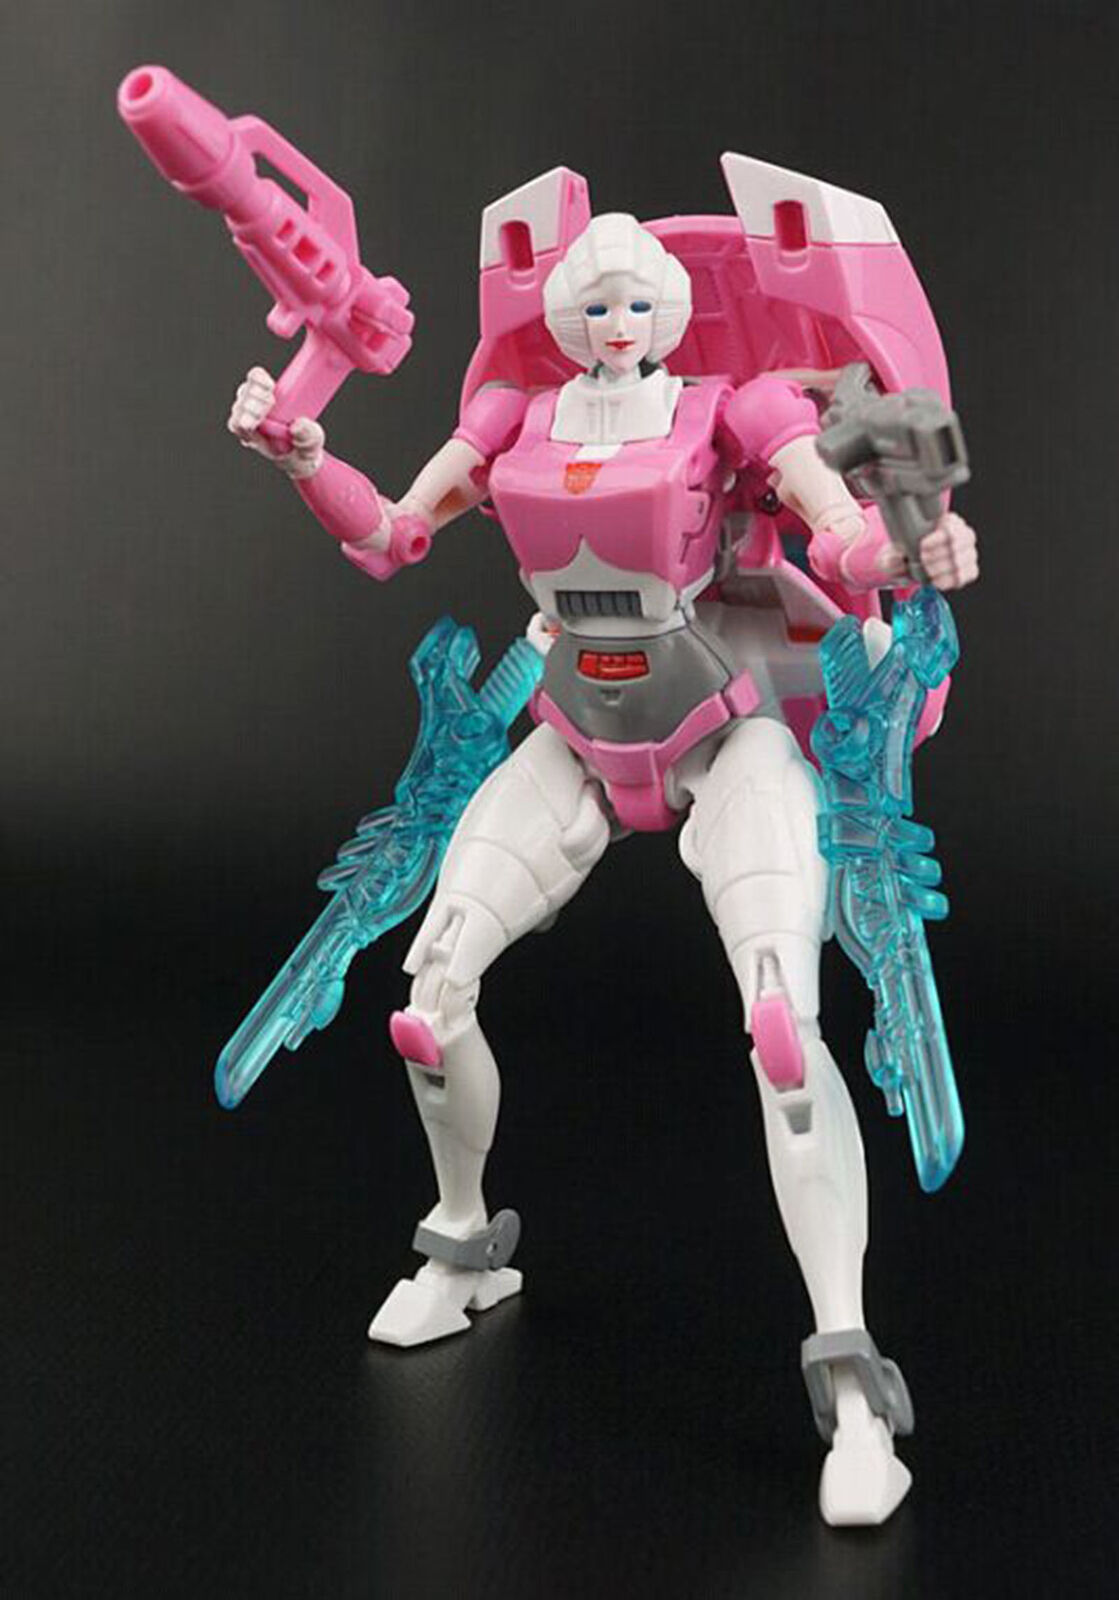 Transformer Legends LG10 ARCEE IDW Class D Action Figure Spielzeug für Kinder